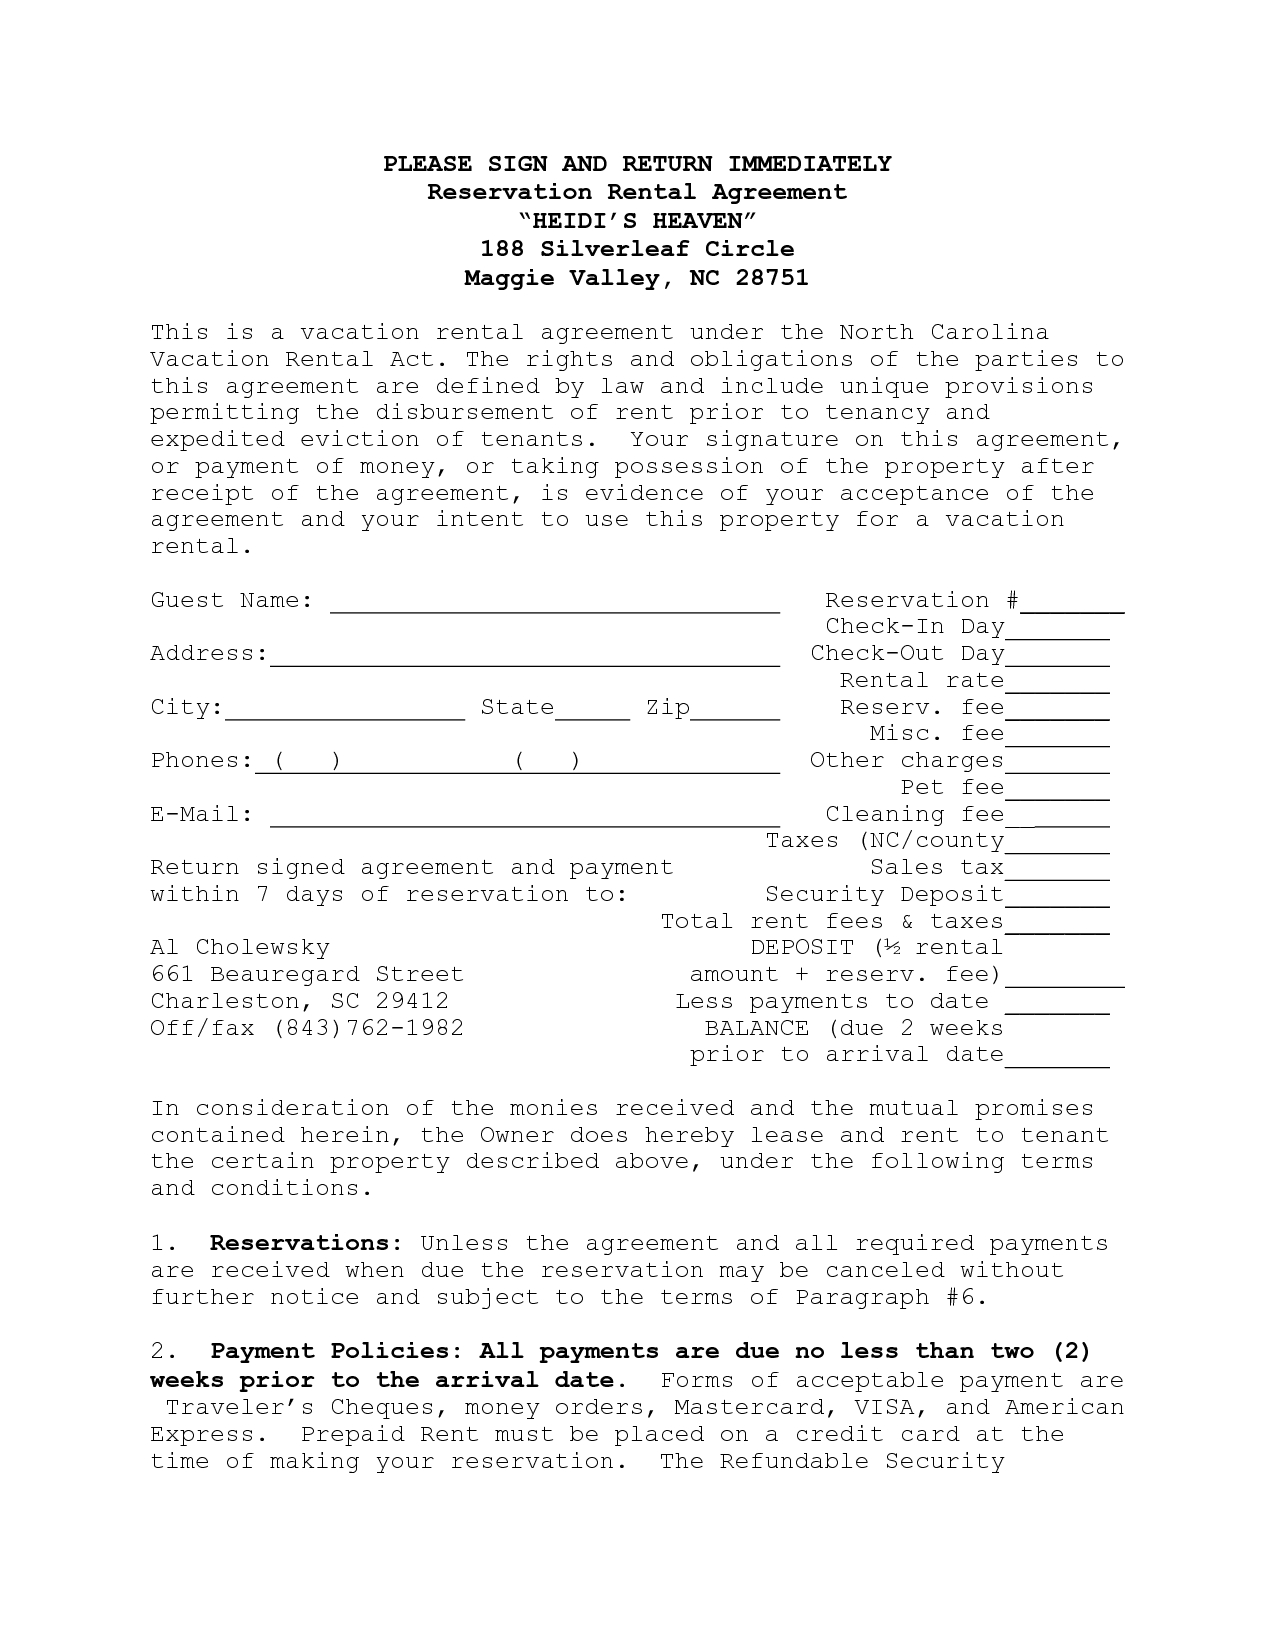 House Lease Agreement Template  House Rental Agreement Contract In With Regard To Vacation Rental Lease Agreement Template